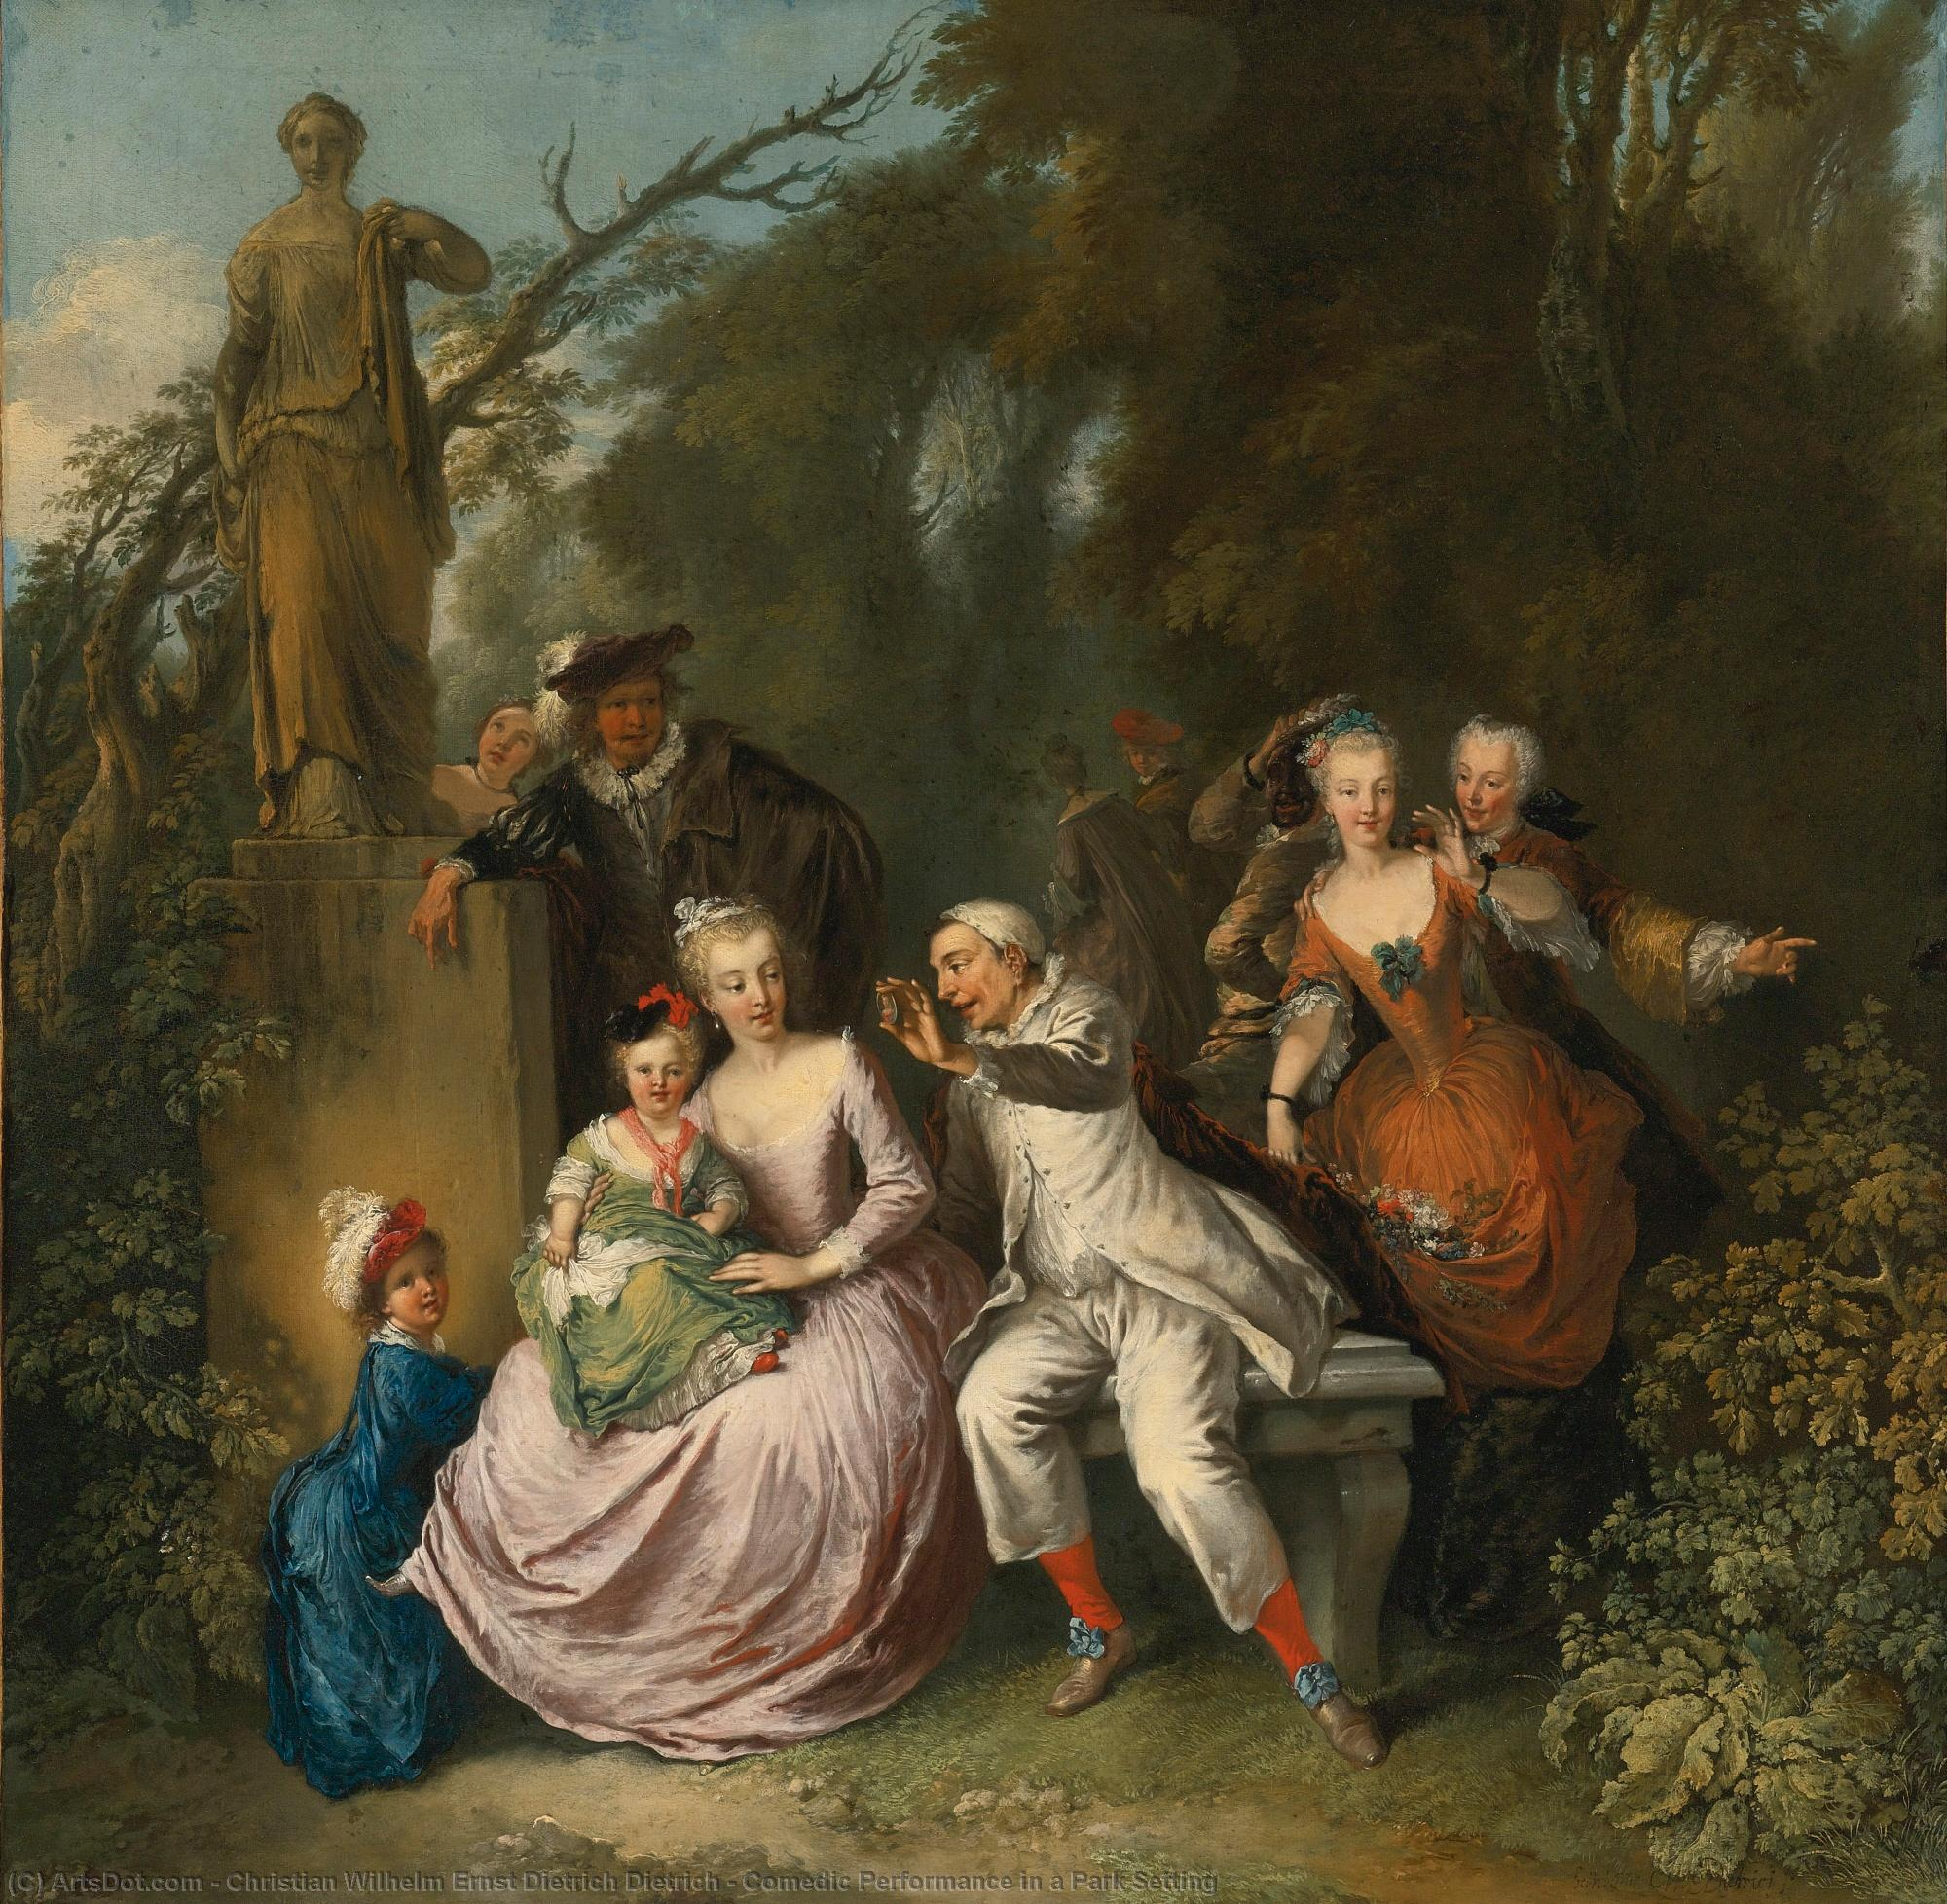 Buy Museum Art Reproductions : Comedic Performance in a Park Setting by Christian Wilhelm Ernst Dietrich Dietrich (1712-1774) | ArtsDot.com